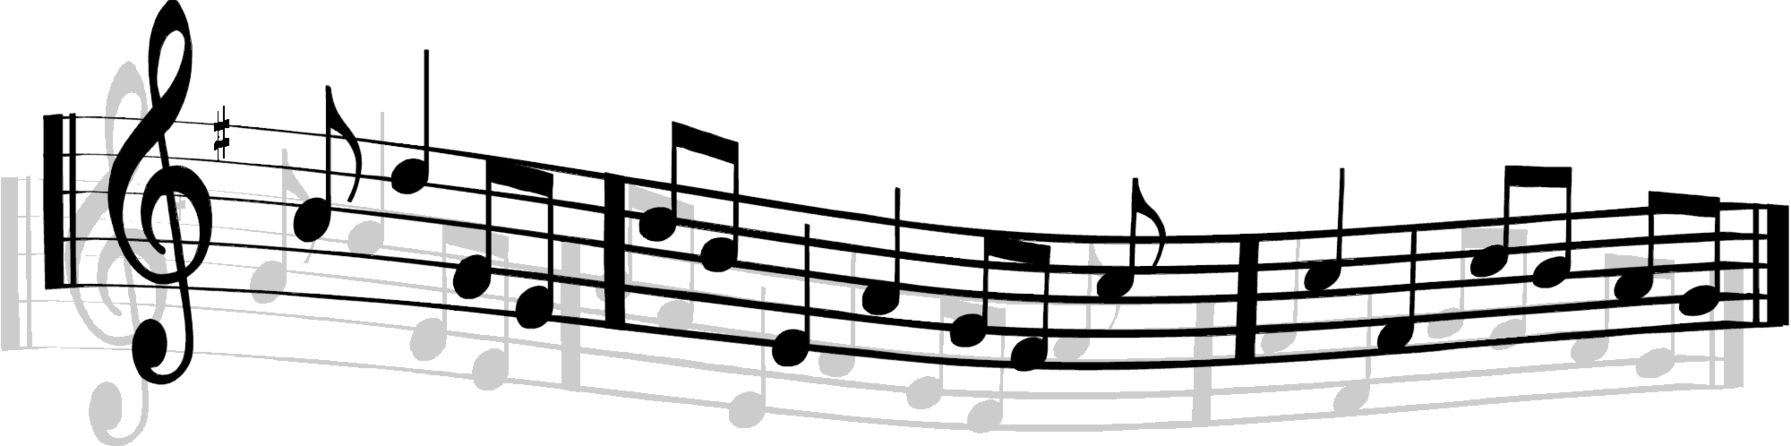 Music Staff Clipart Clipart Panda Free Clipart Images